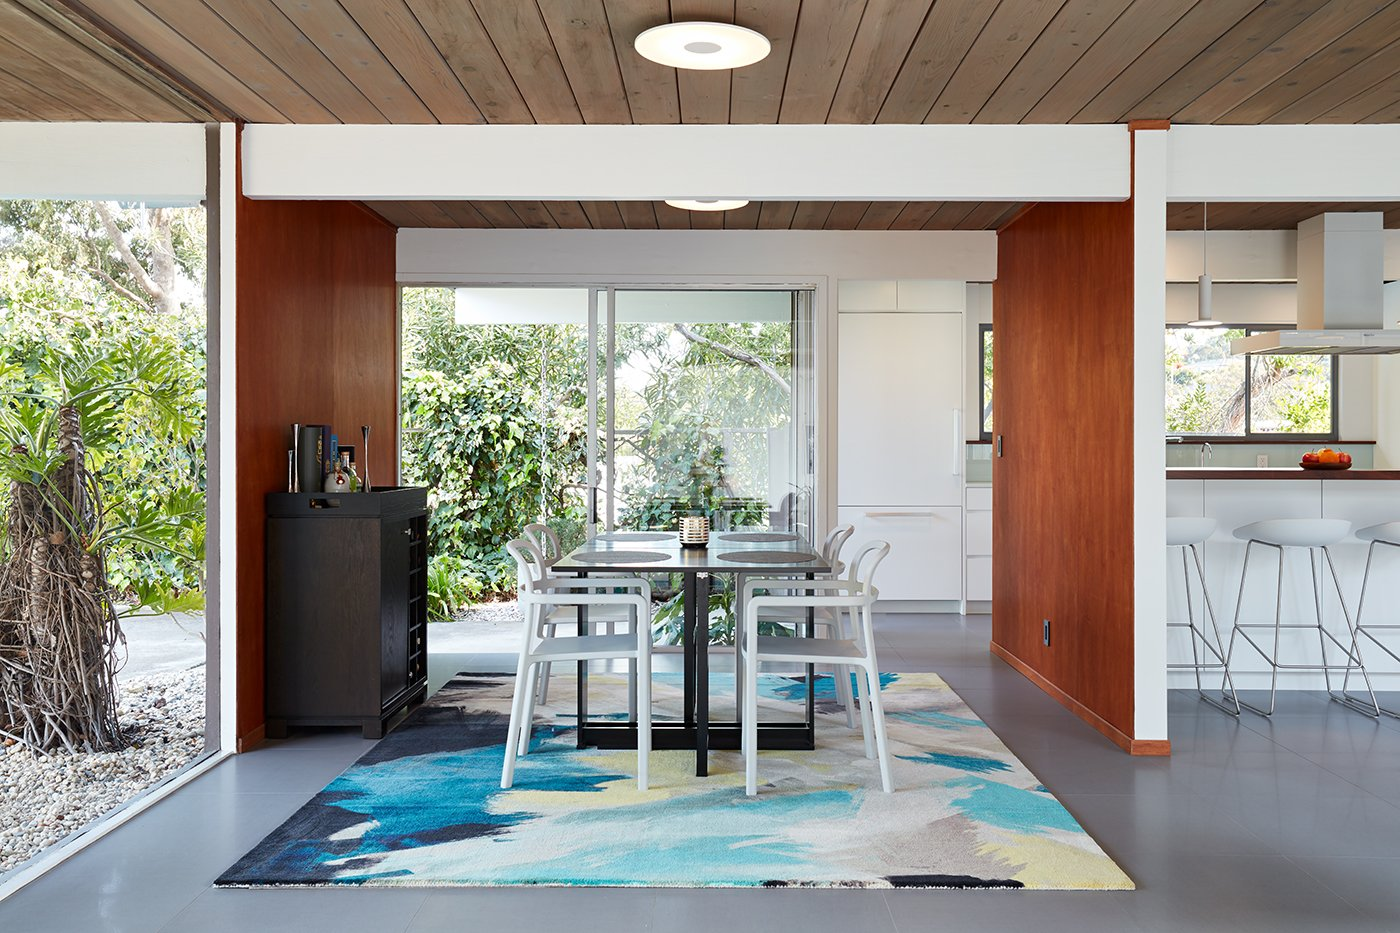 This Eichler Home in California Mixes Scandinavian Vibes With Midcentury Charm - Dwell